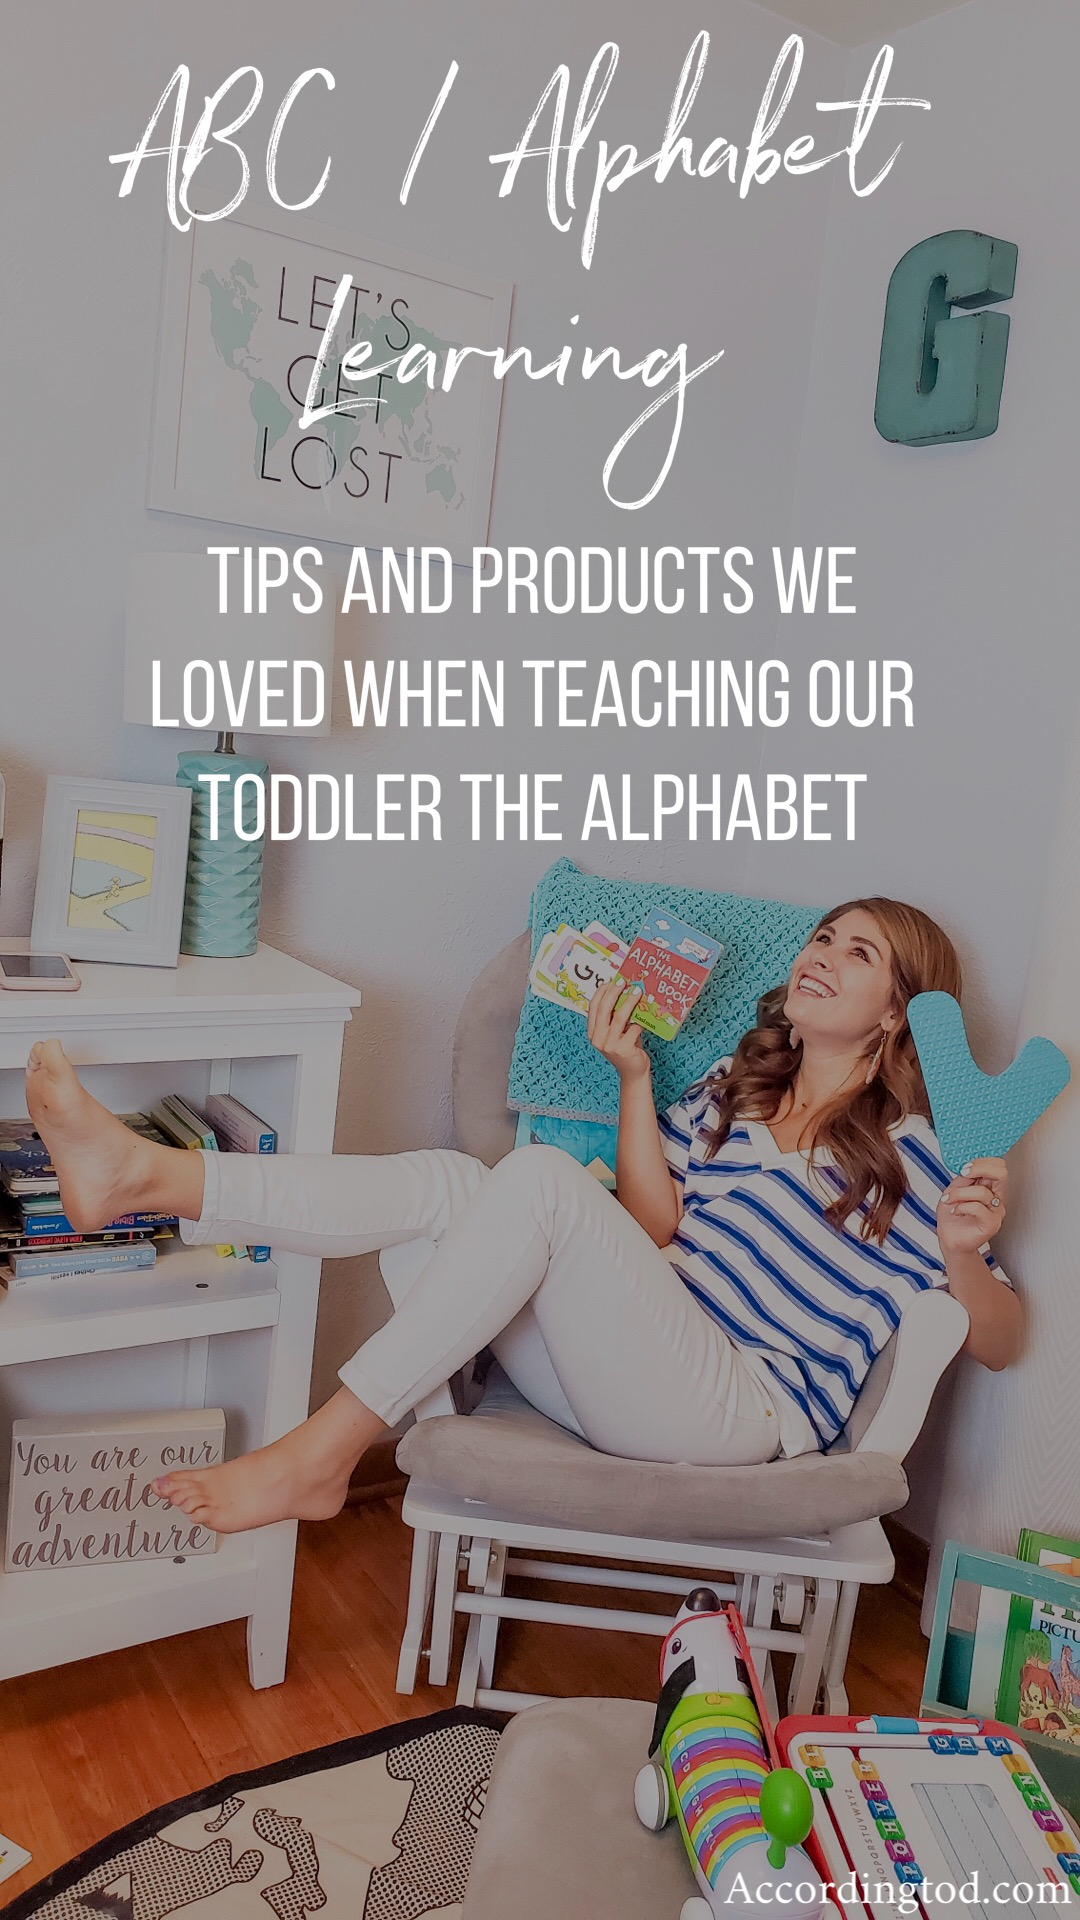 teach toddler the alphabet products and tips